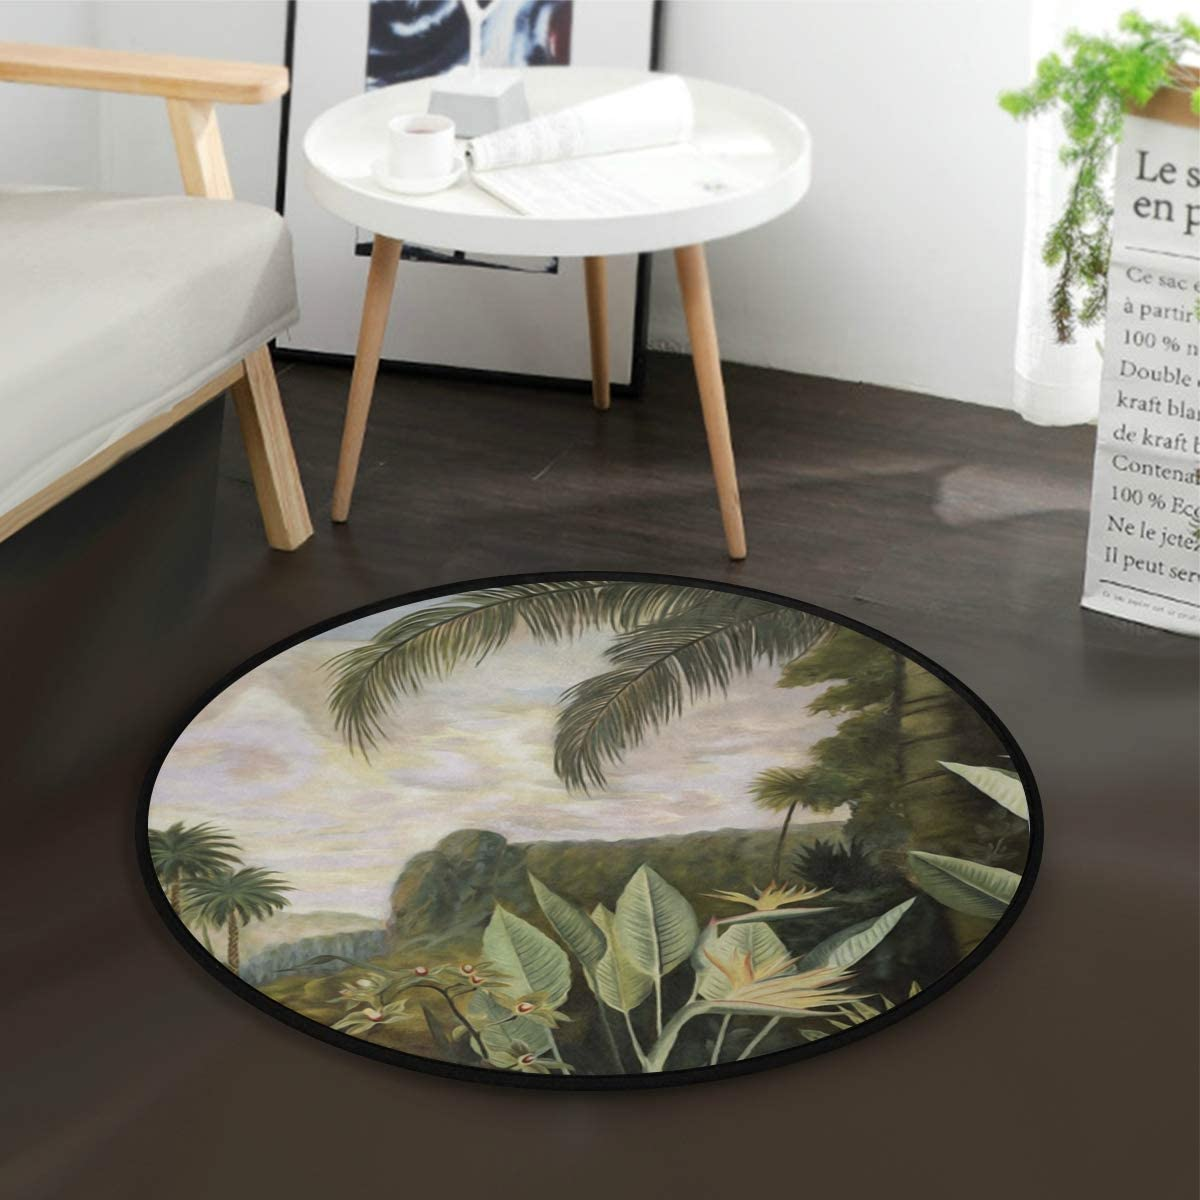 Art Tropical Plants Round Rug 3.6 X 3.6 ft for Bedroom Small Area Rug Circular RugsRoom Decor Washable